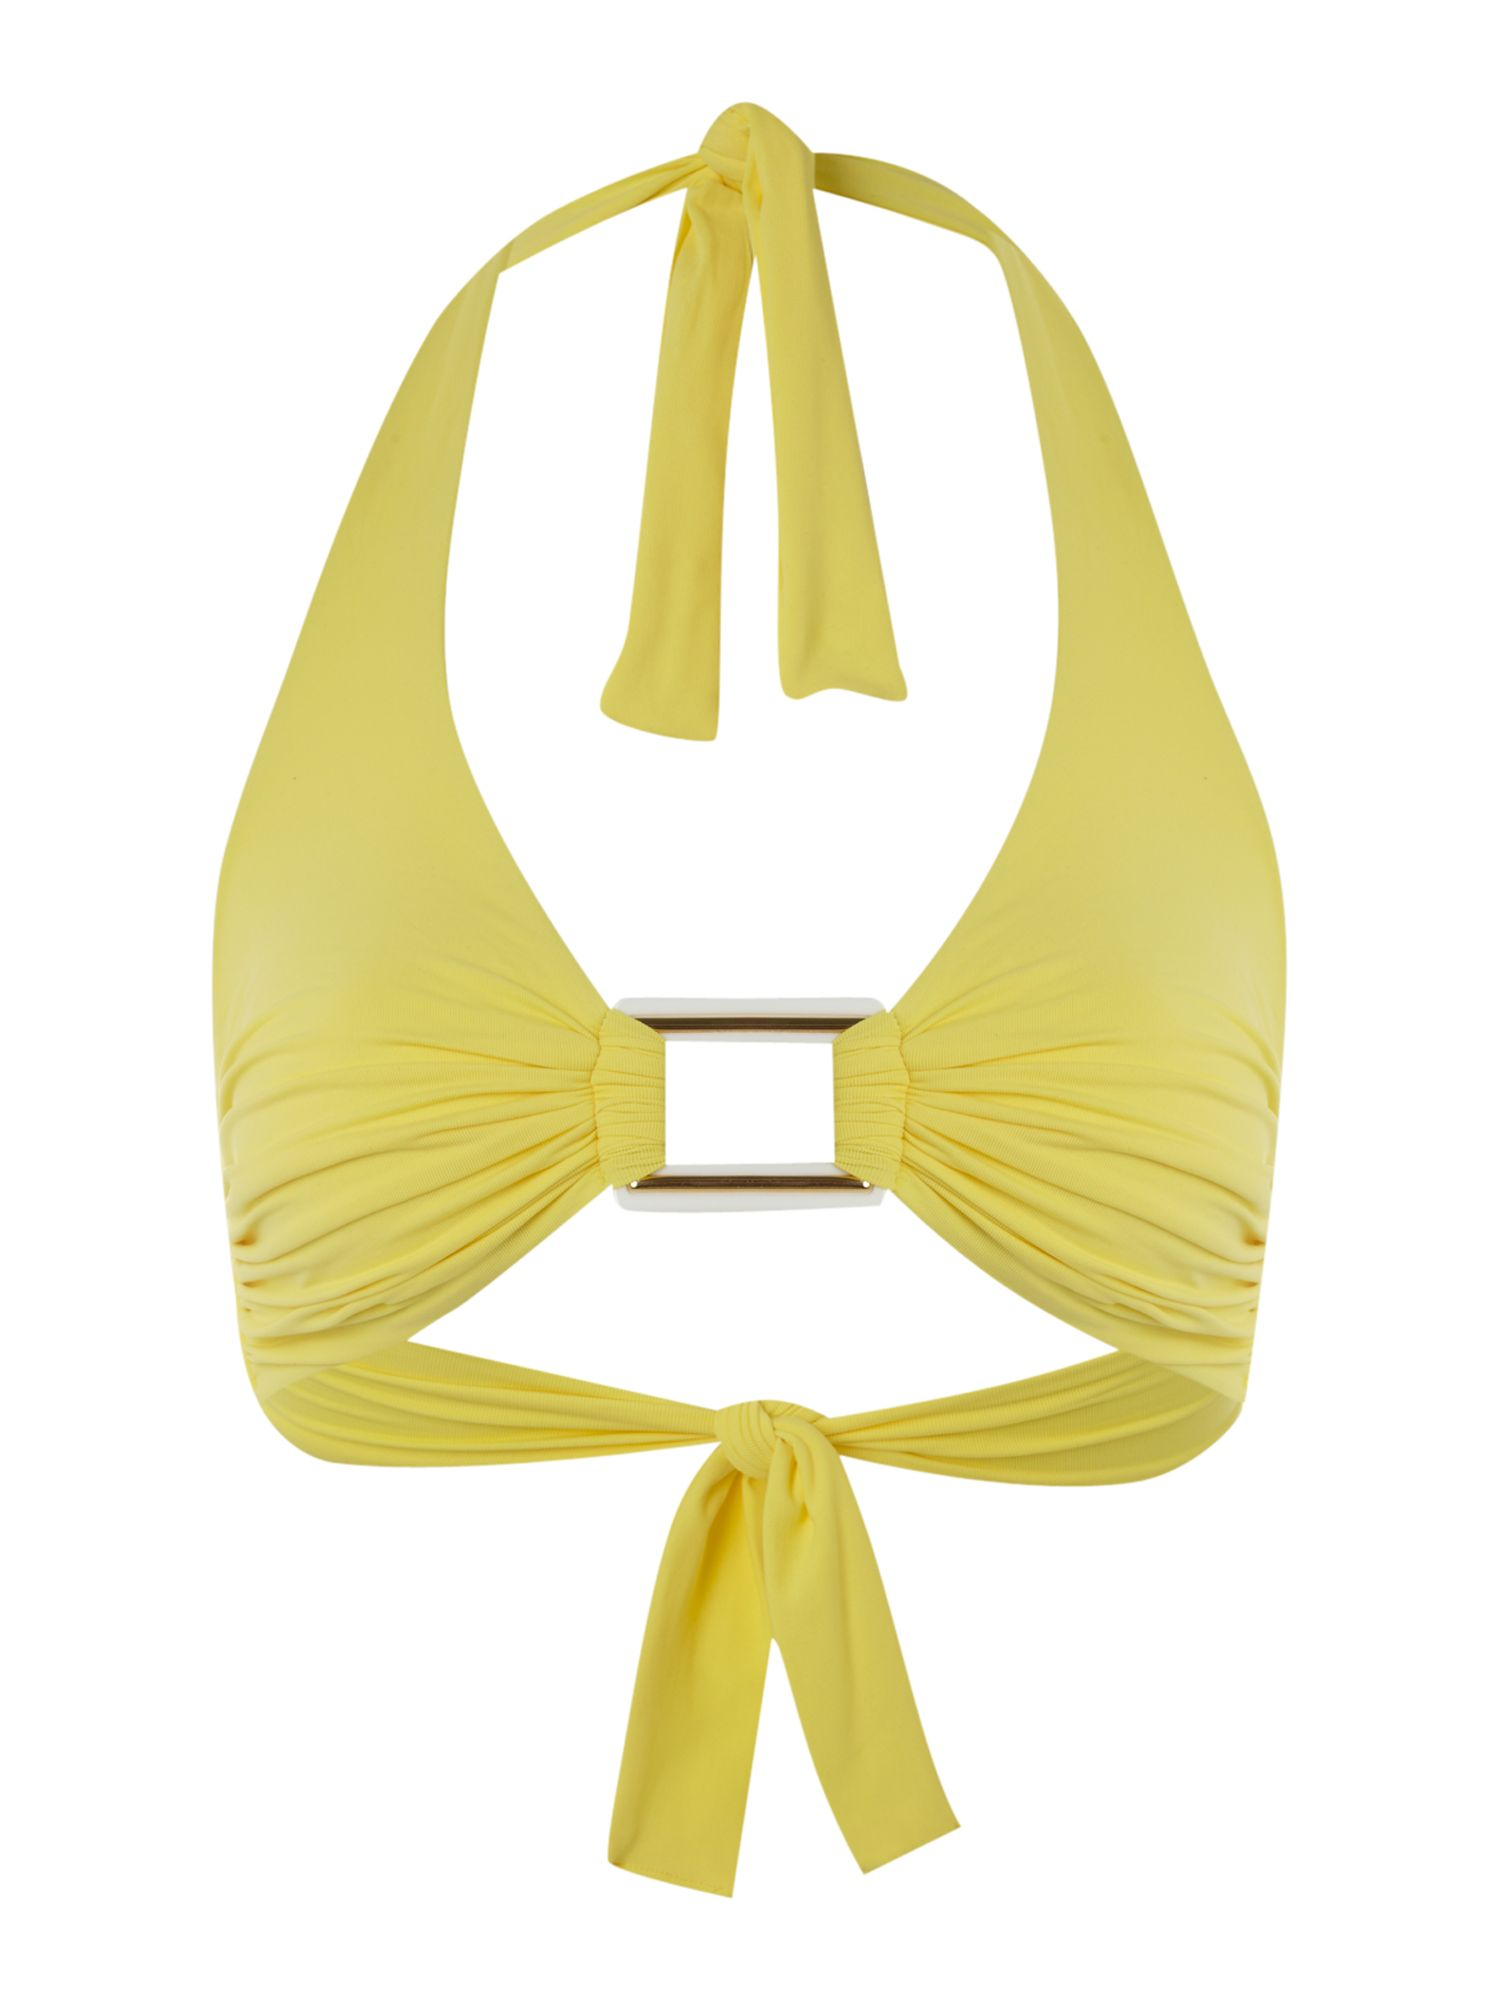 Paris yellow halter top